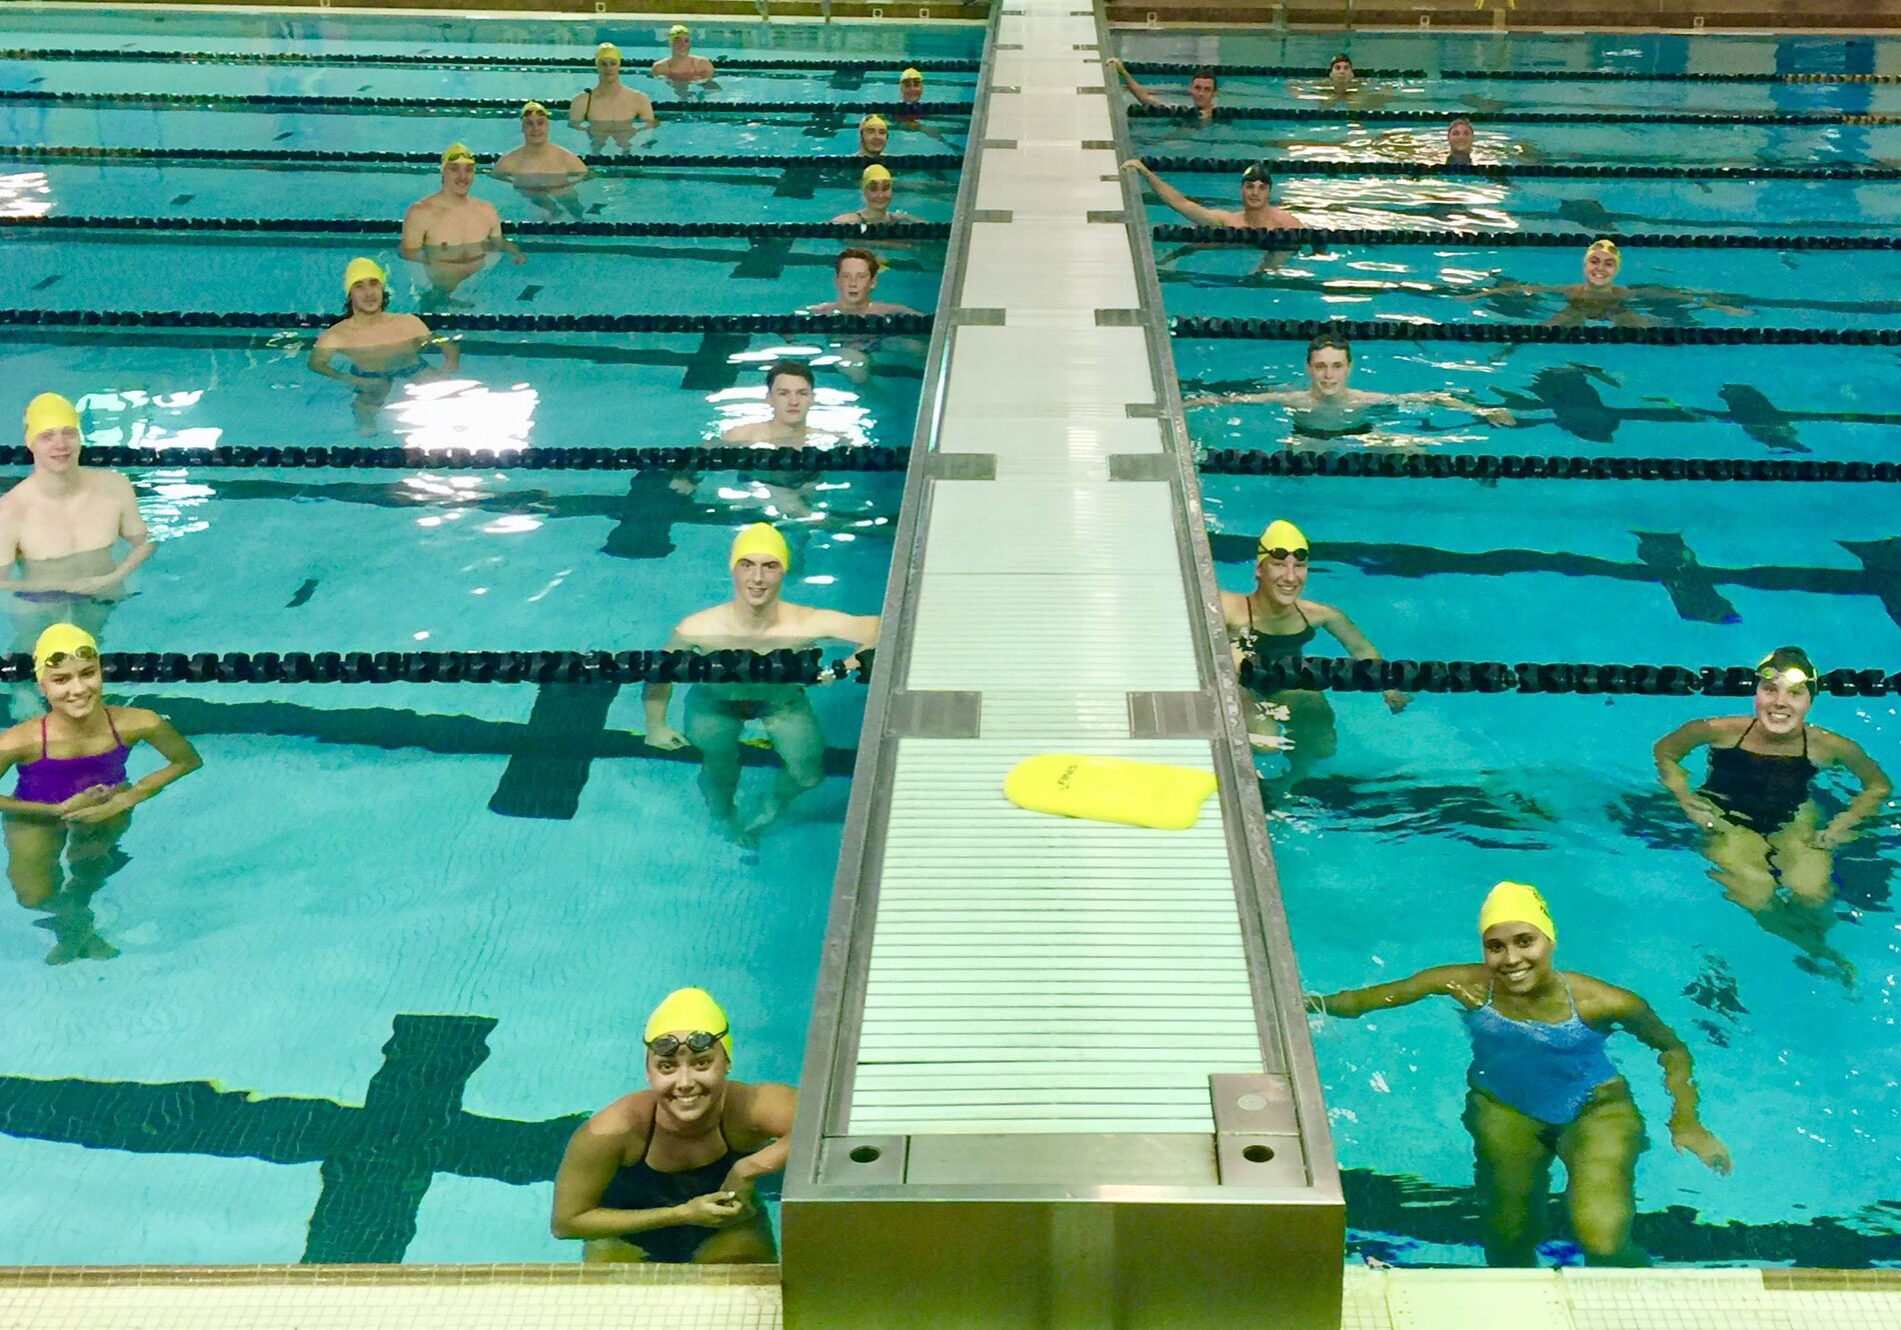 Remote swim meets1_Lance Cansdale